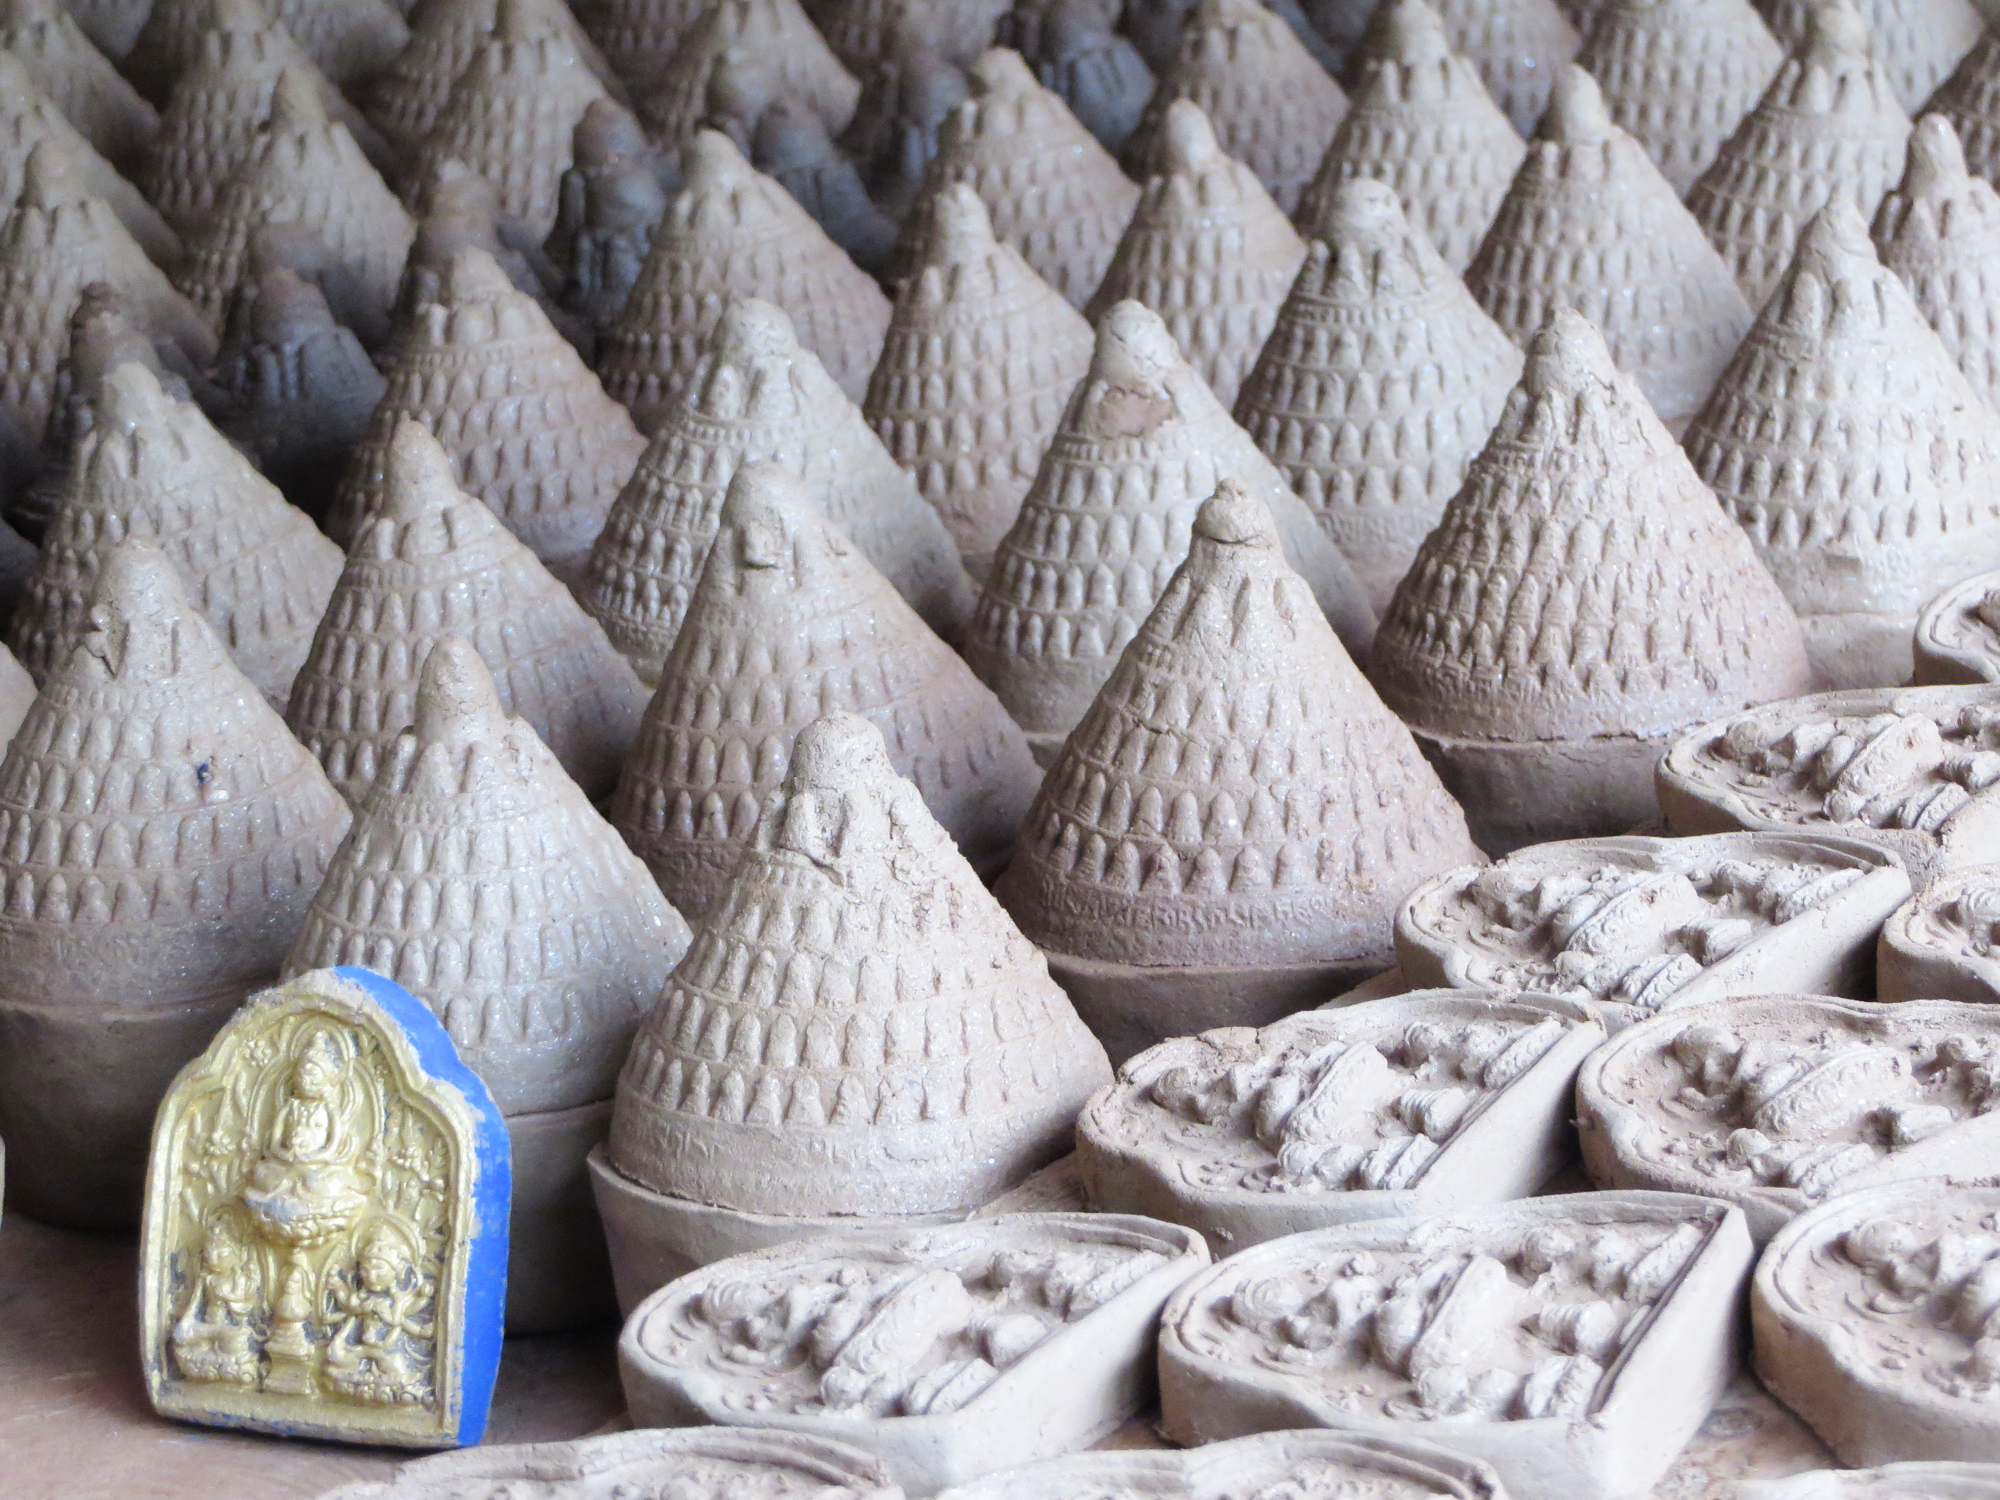 buddha clay figurines2